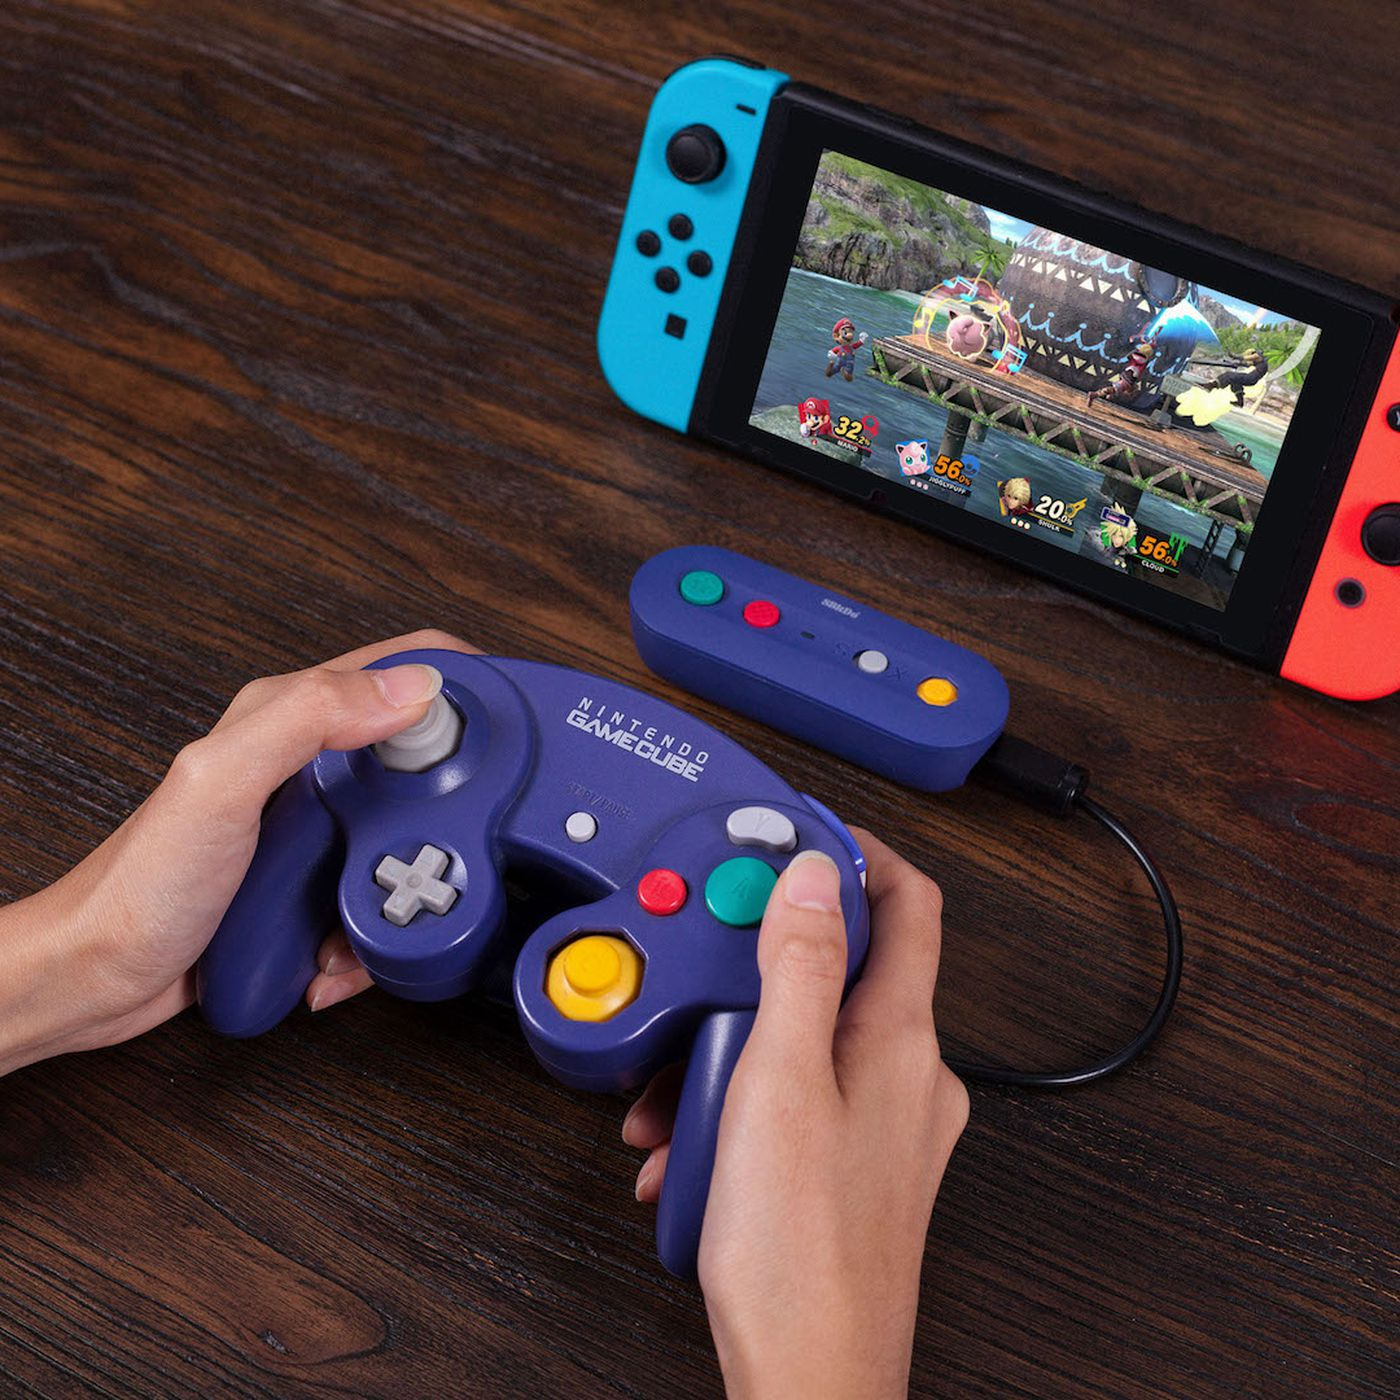 theverge.com - Andrew Webster - This Nintendo Switch adapter turns your GameCube controllers wireless